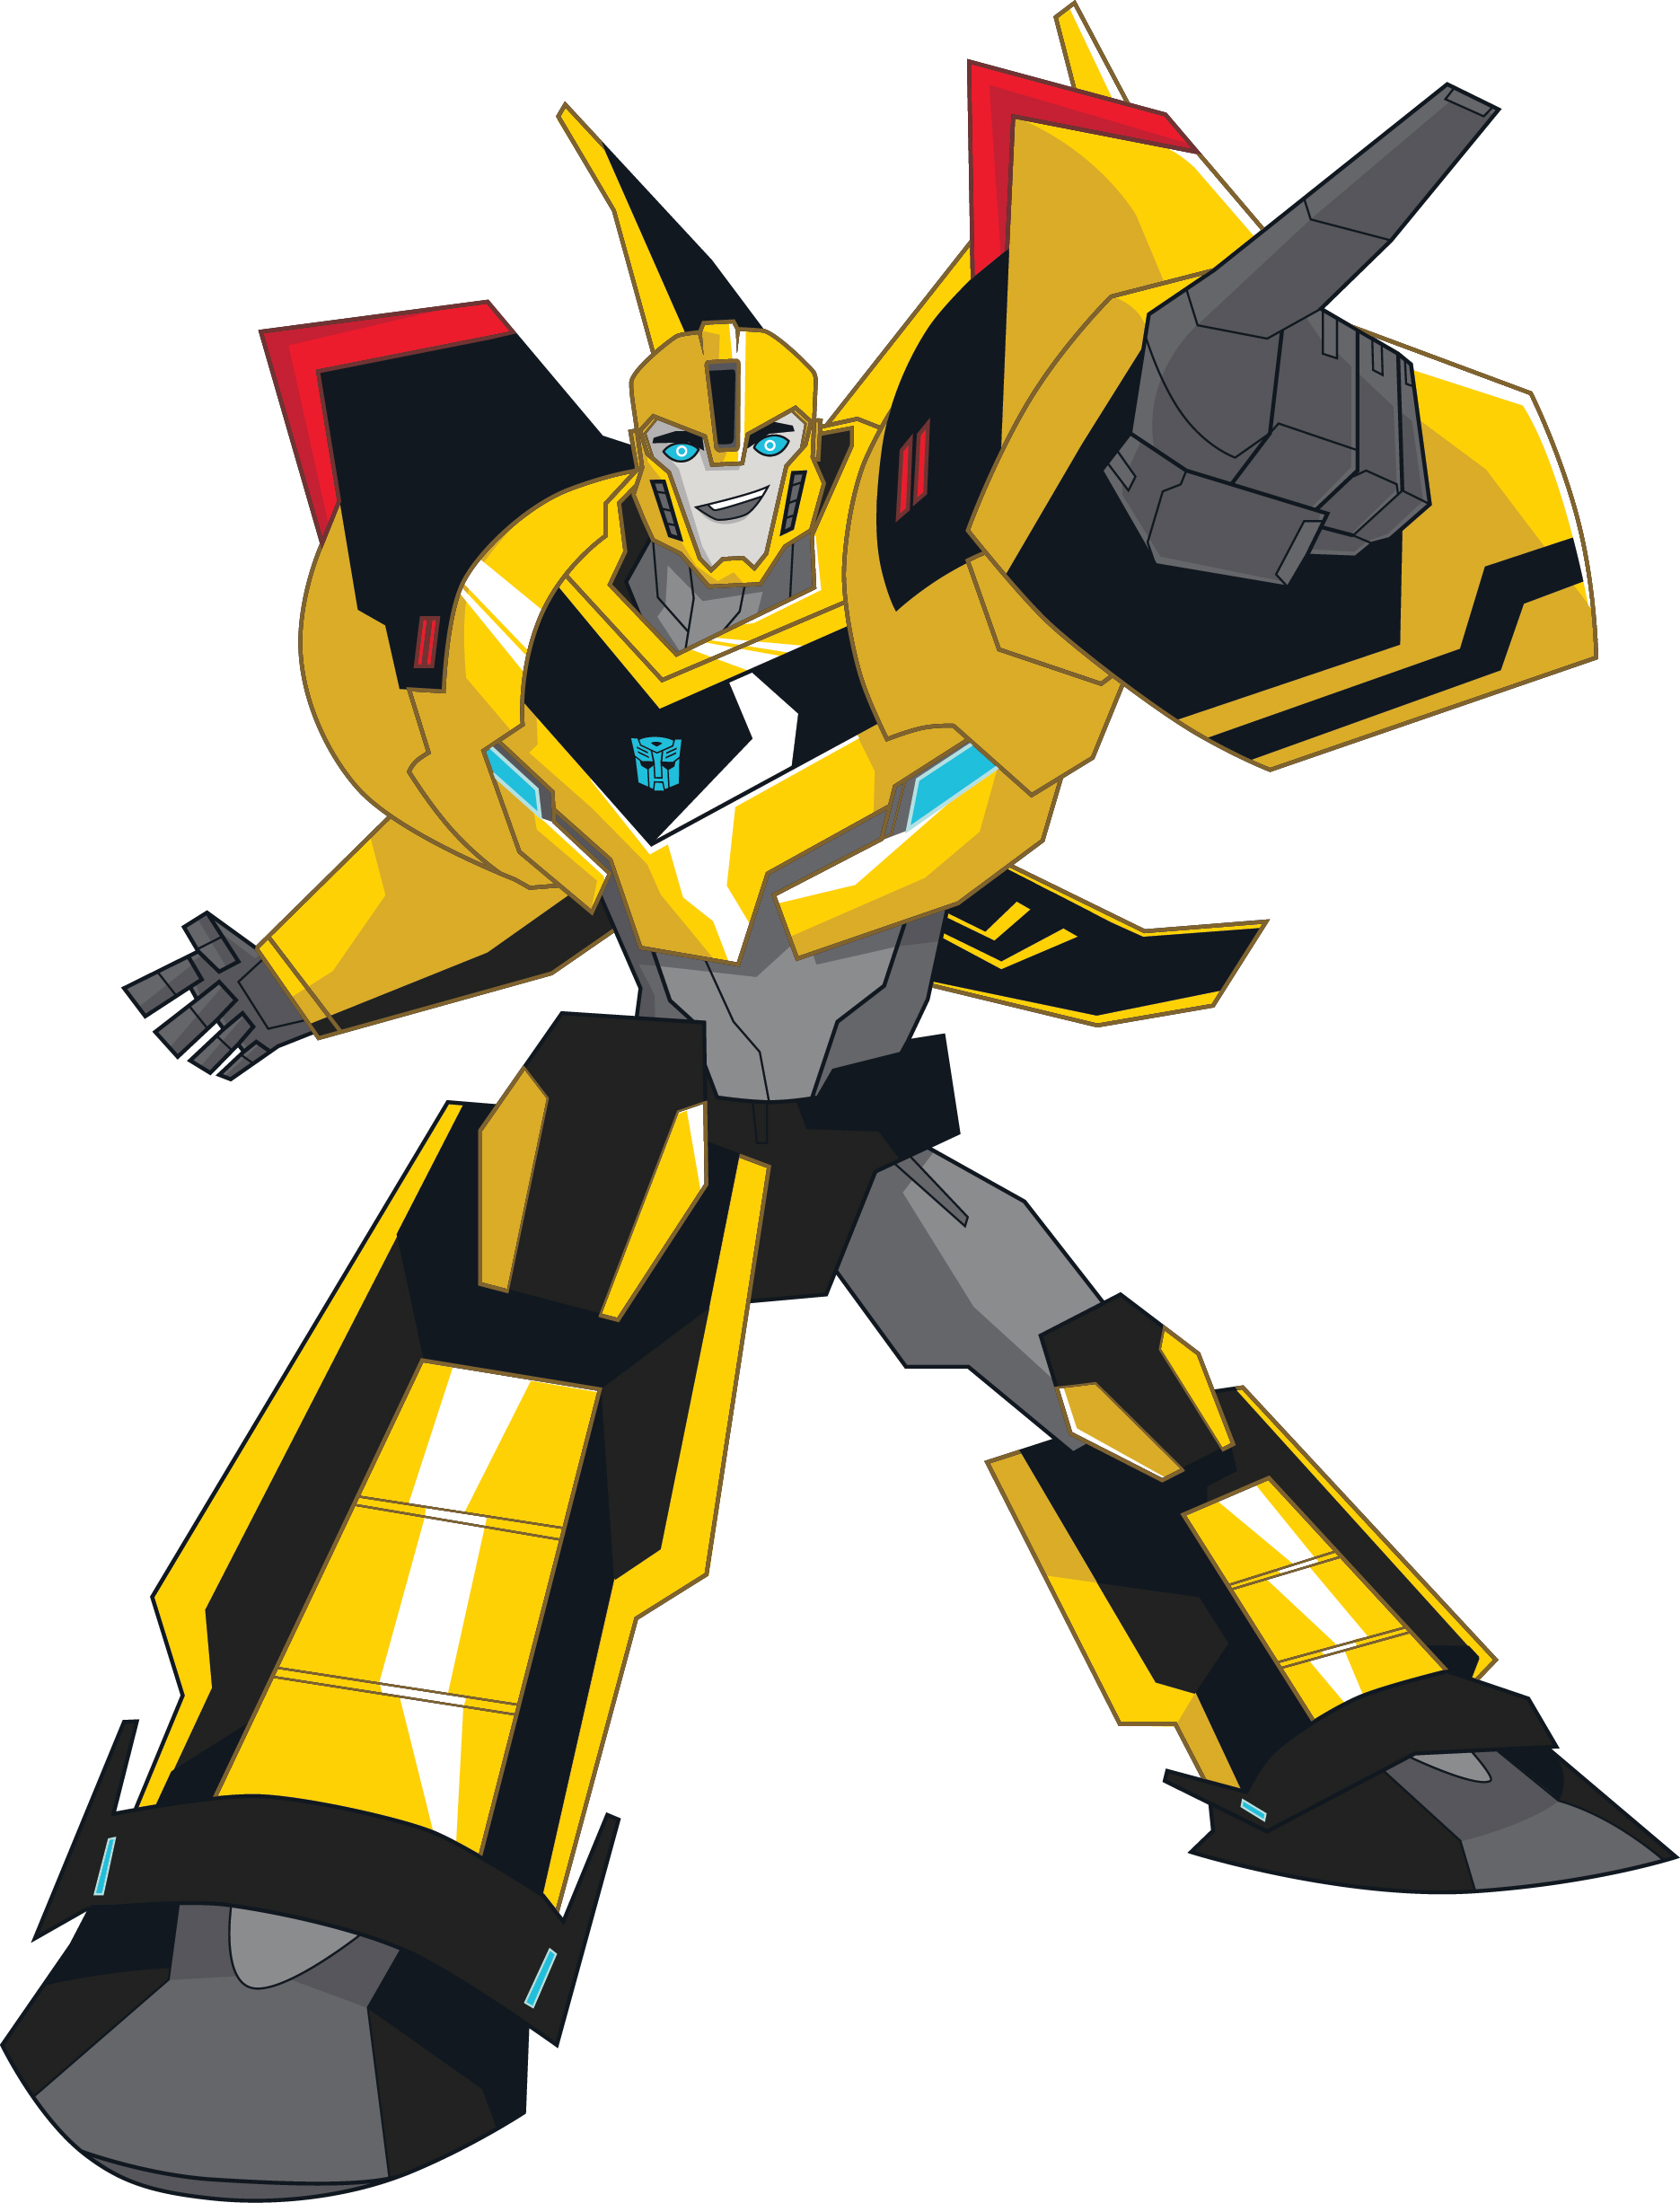 Transformers clip art 9 image.